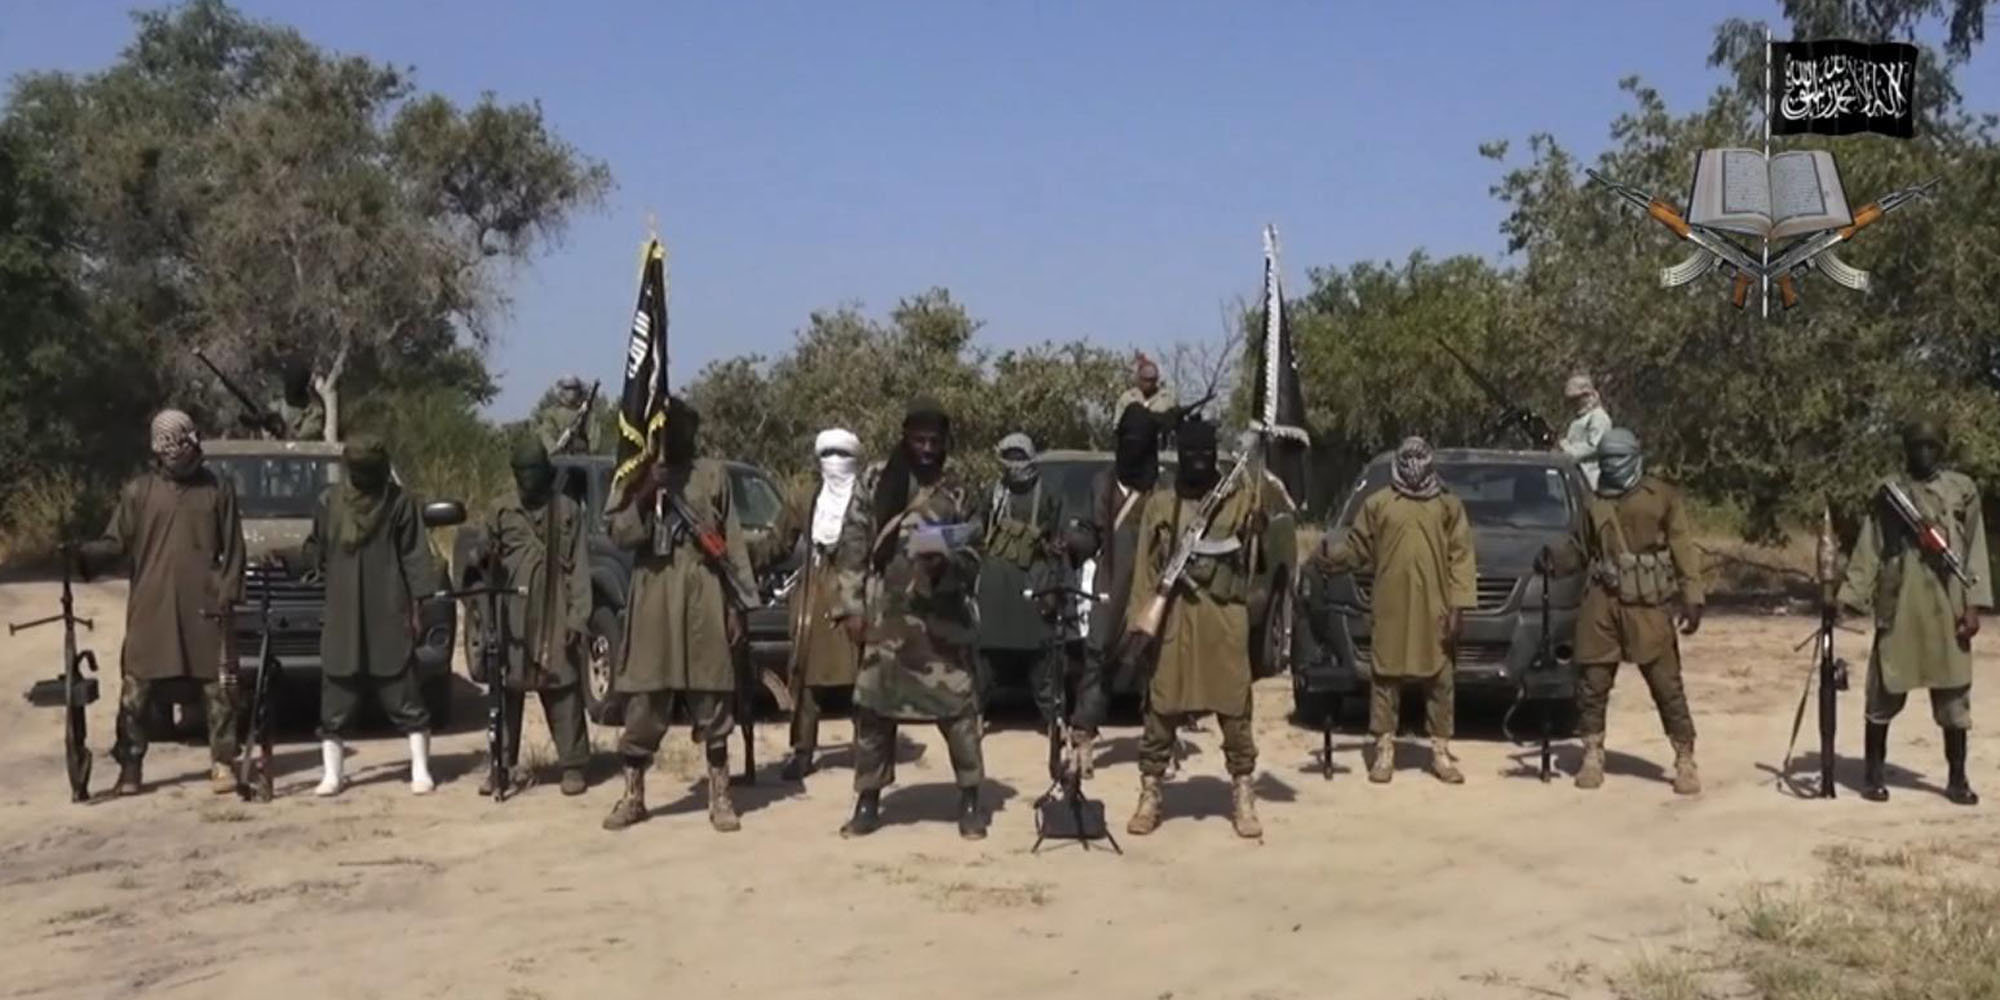 FILE - In this file image taken from video released late Friday evening, Oct. 31, 2014, by Boko Haram, Abubakar Shekau, centre, the leader of Nigeria's Islamic extremist group. Boko Haram fighters have shot or burned to death about 90 civilians and wounded 500 in ongoing fighting in a Cameroonian border town near Nigeria, officials in Cameroon said Thursday, Feb. 5, 2015. (AP Photo/Boko Haram,File)